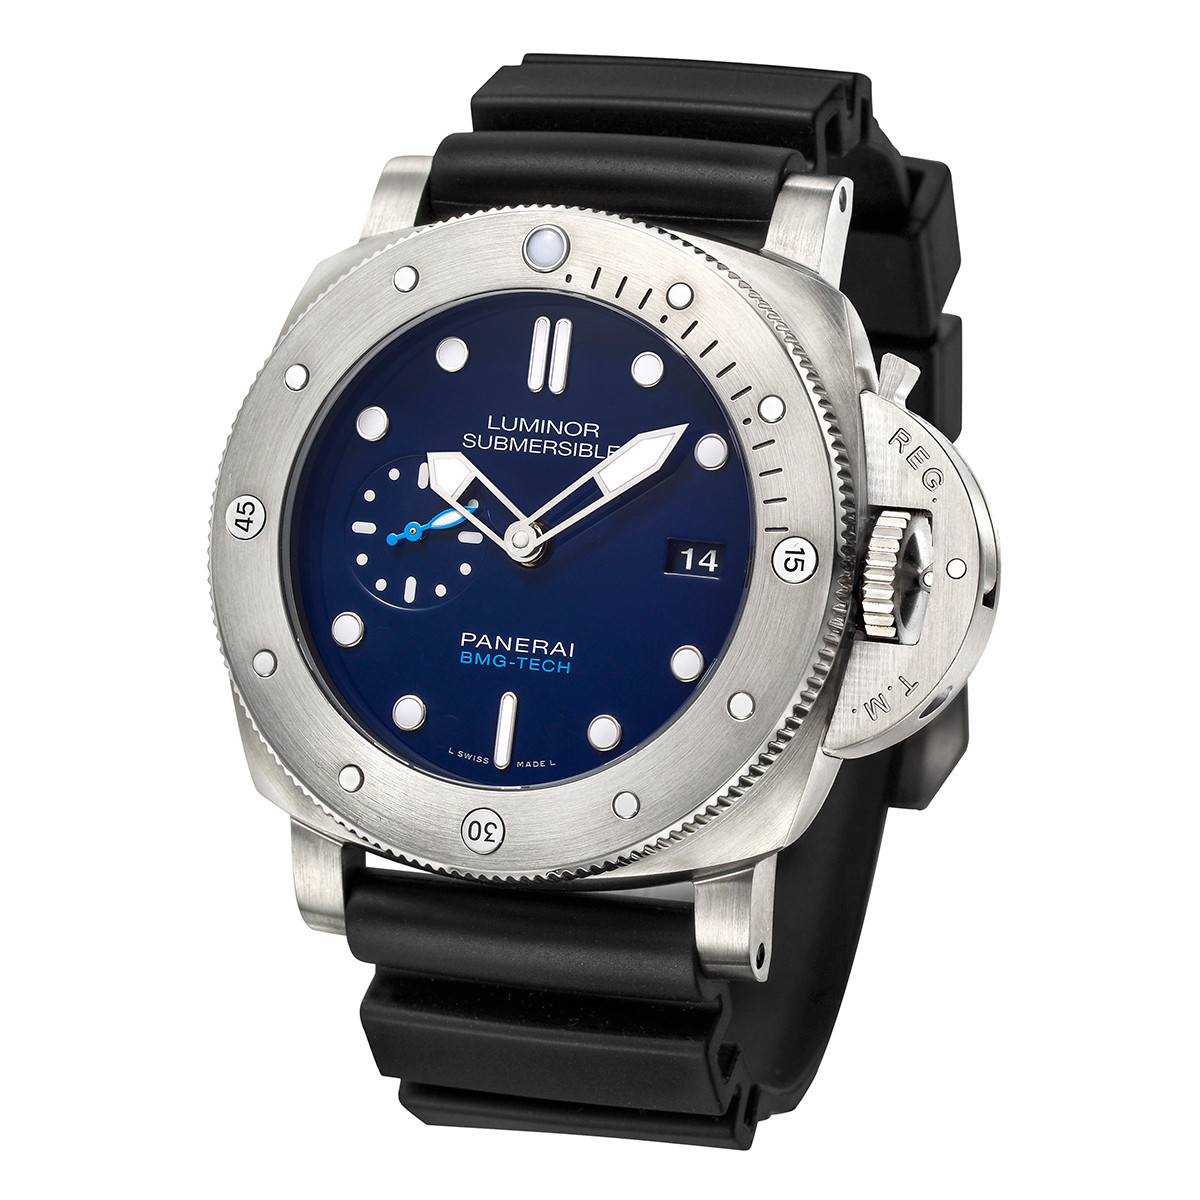 Submersible 47mm BMG-TECH (PAM00692)